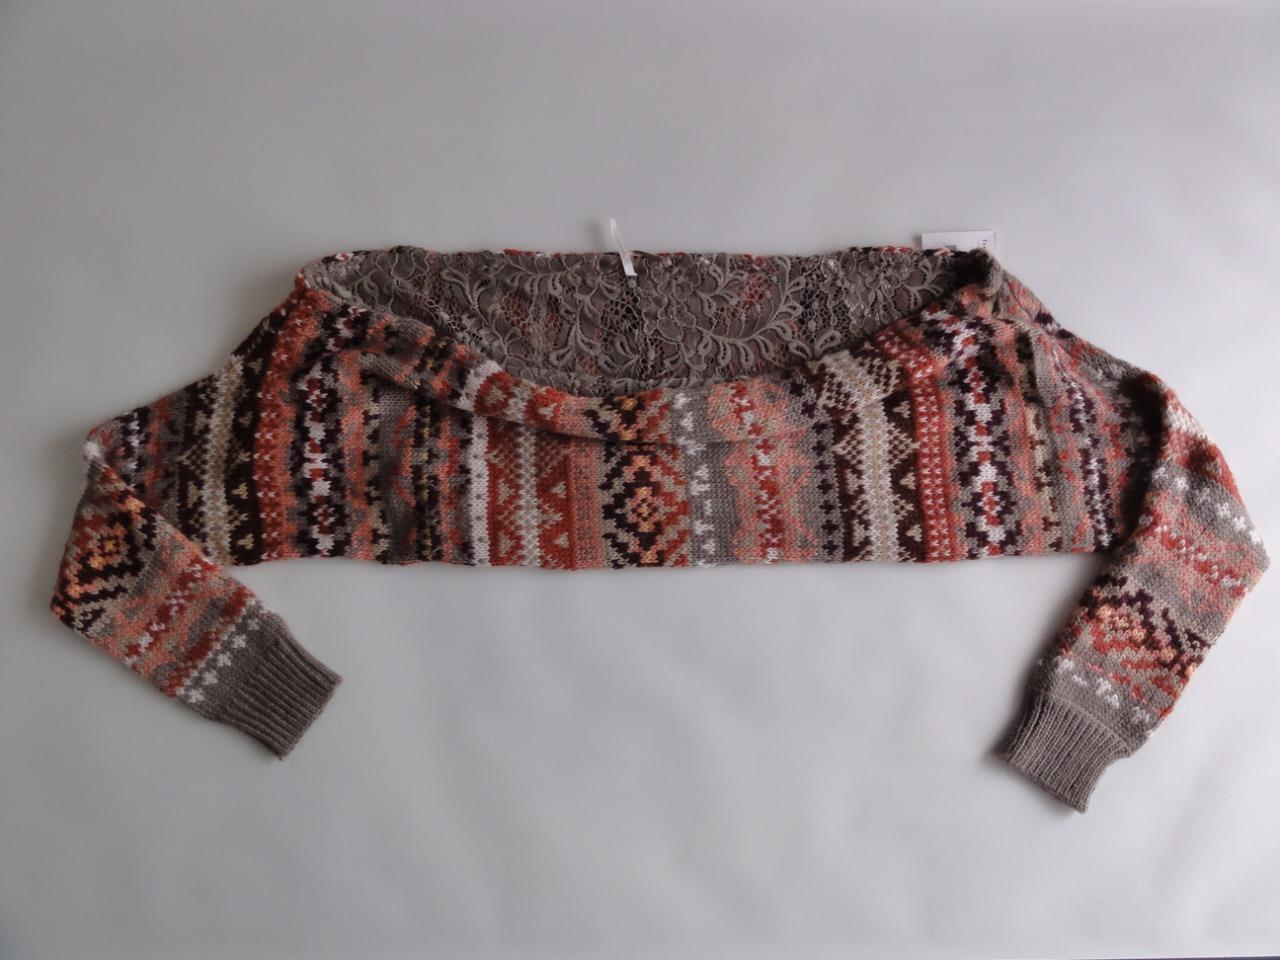 FREE PEOPLE CARNIVAL SHRUG SWEATER, Taupe combo, Size M, MSRP